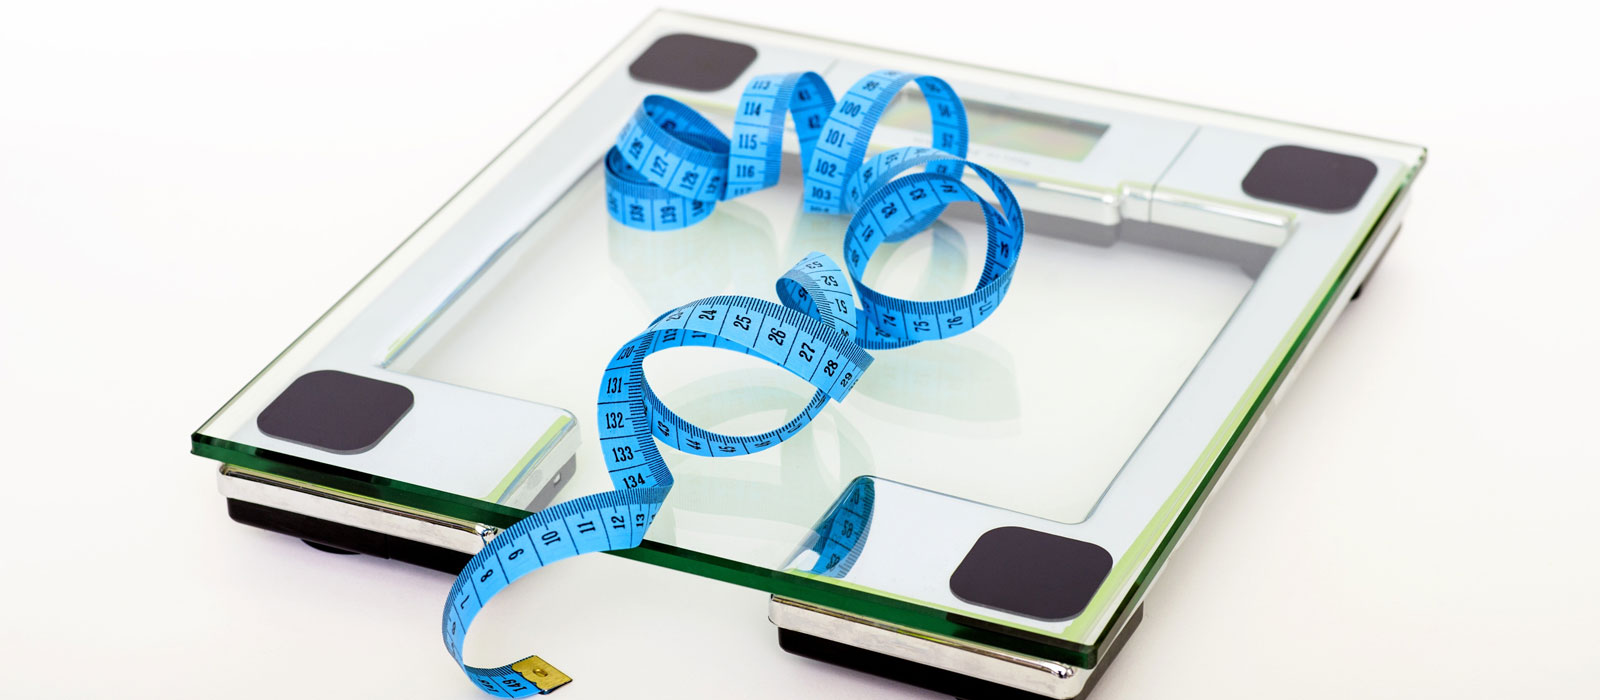 Managing Weight Loss in Patients With Cancer